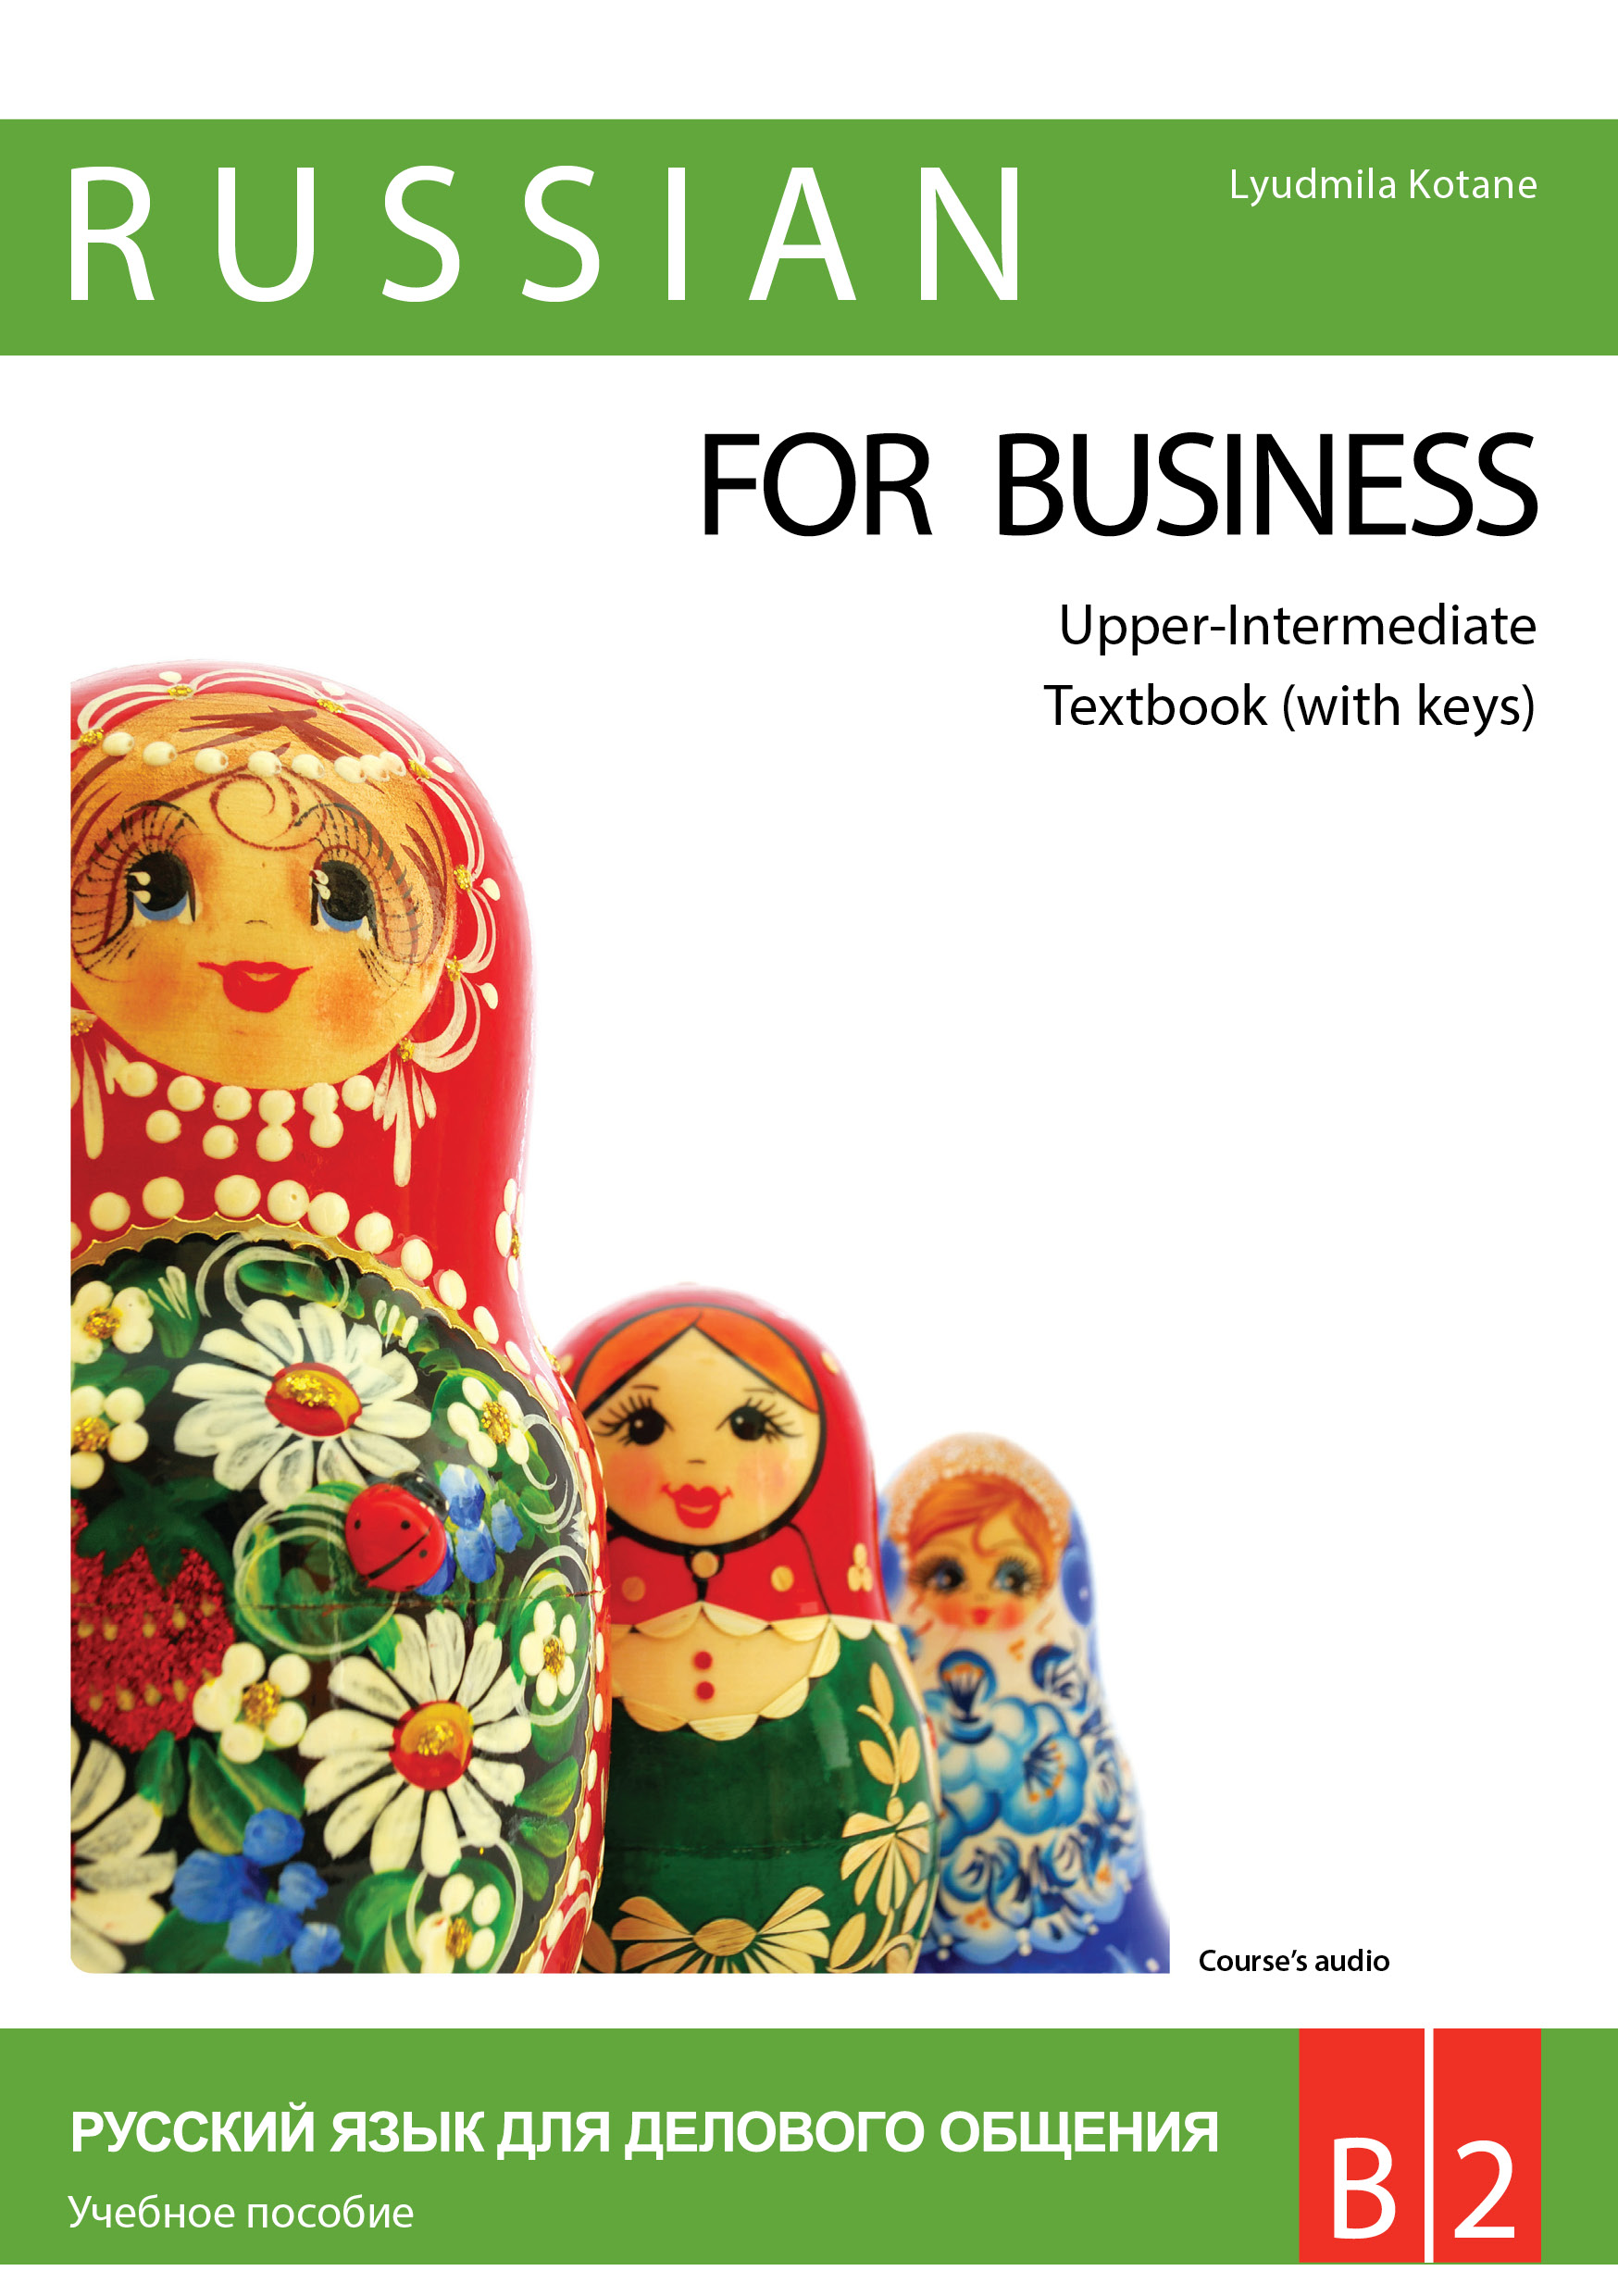 B2_textbook_cover